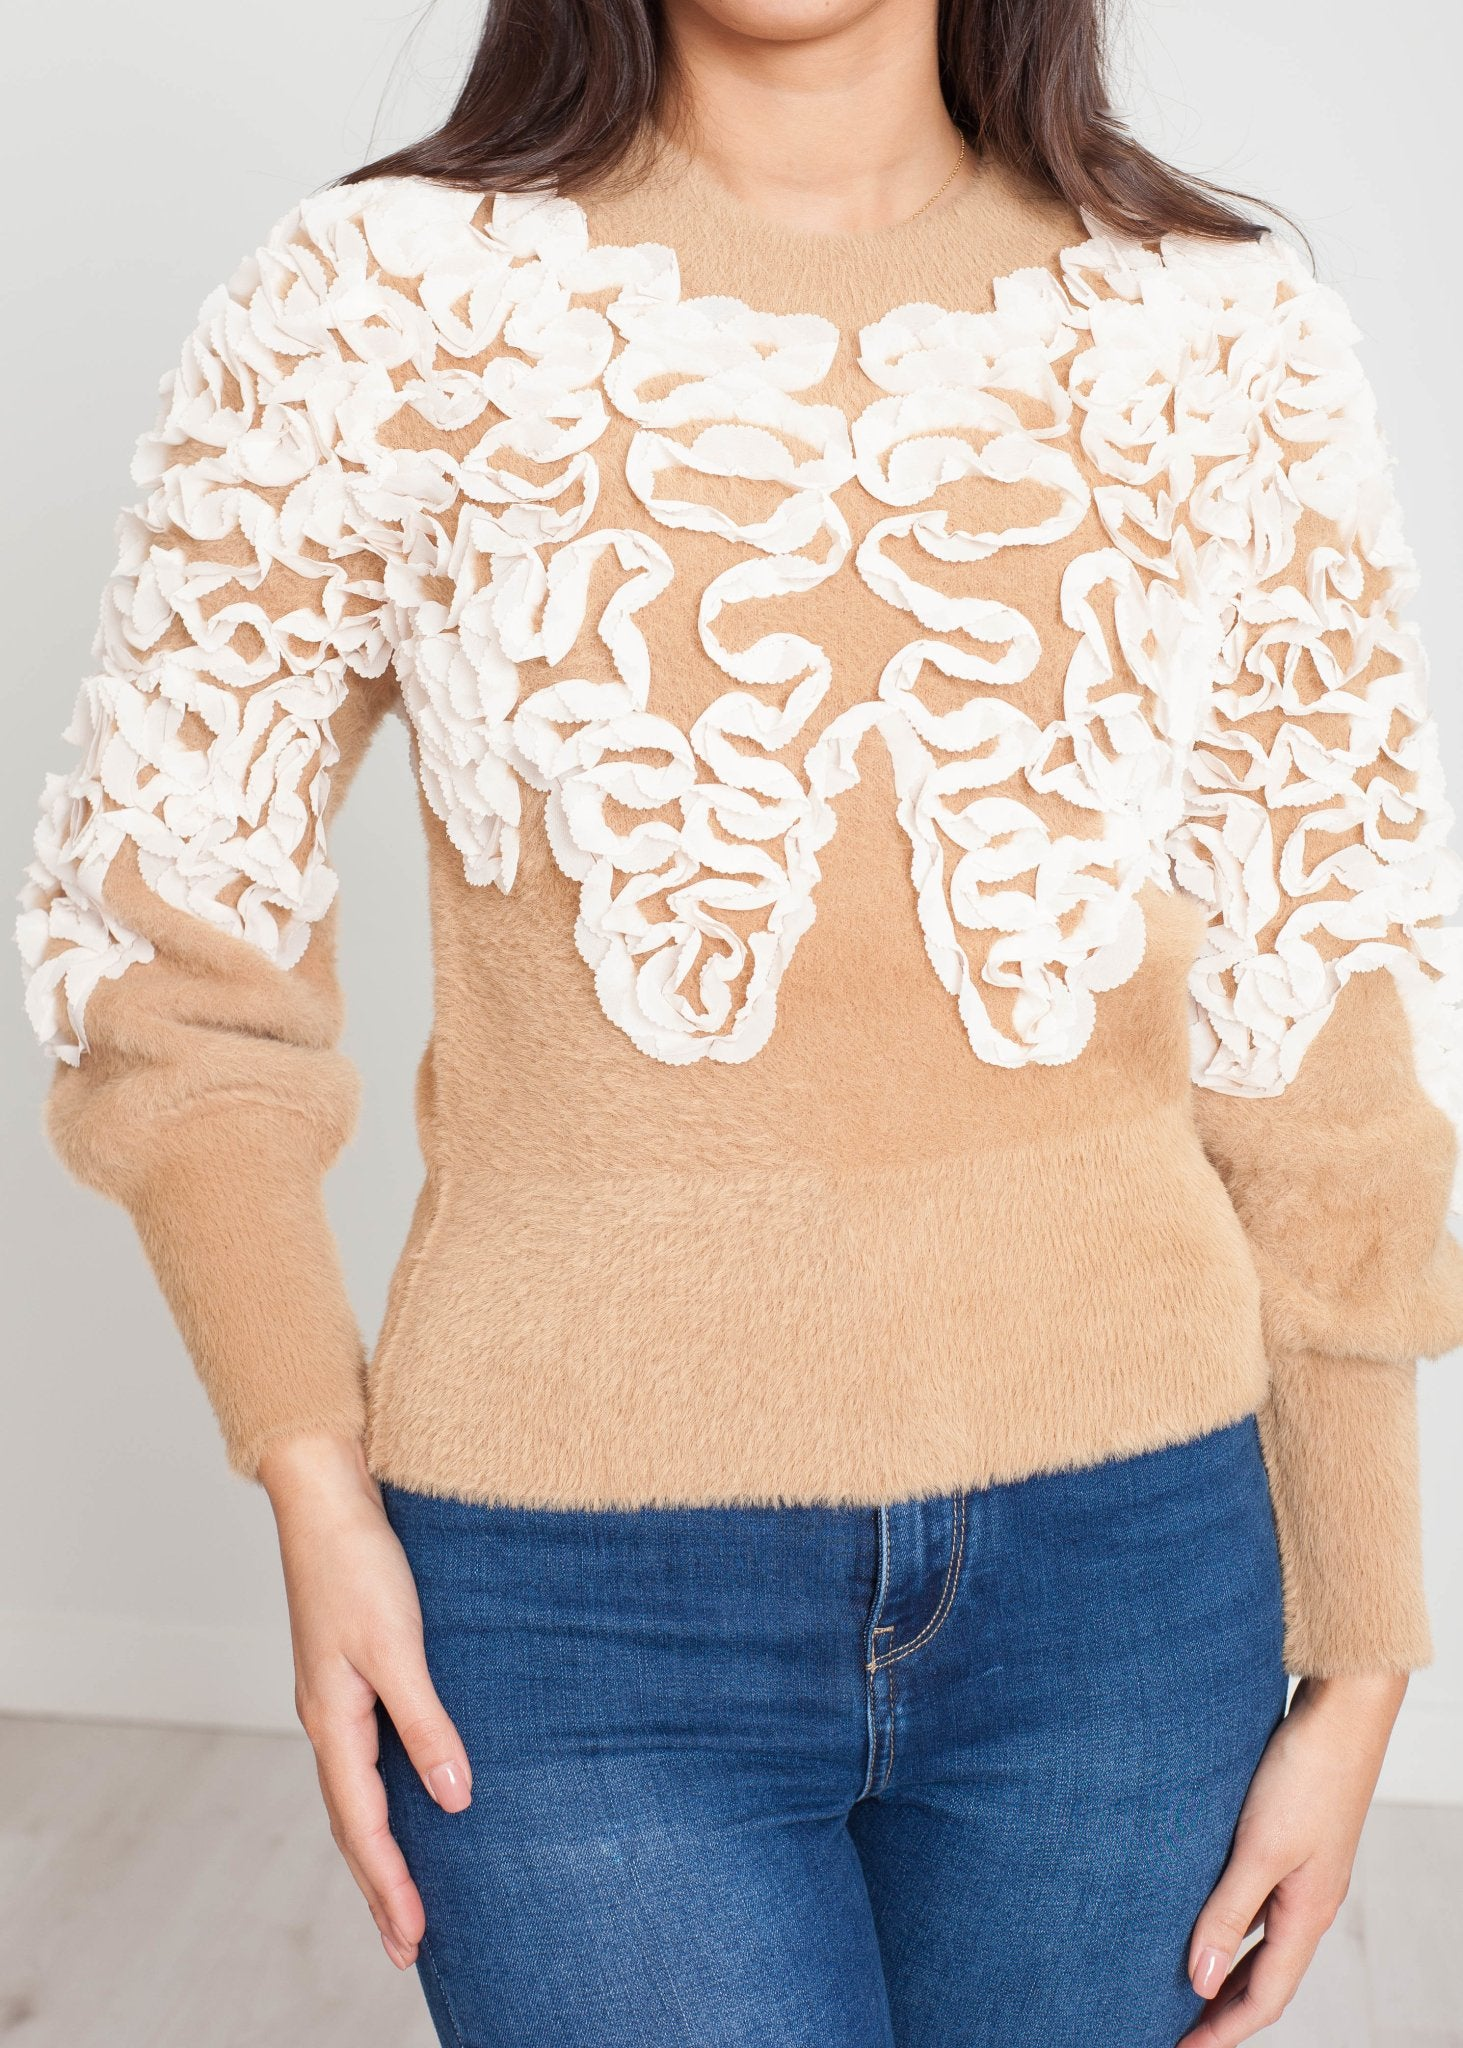 Sophia Jumper With Ruffle In Tan - The Walk in Wardrobe